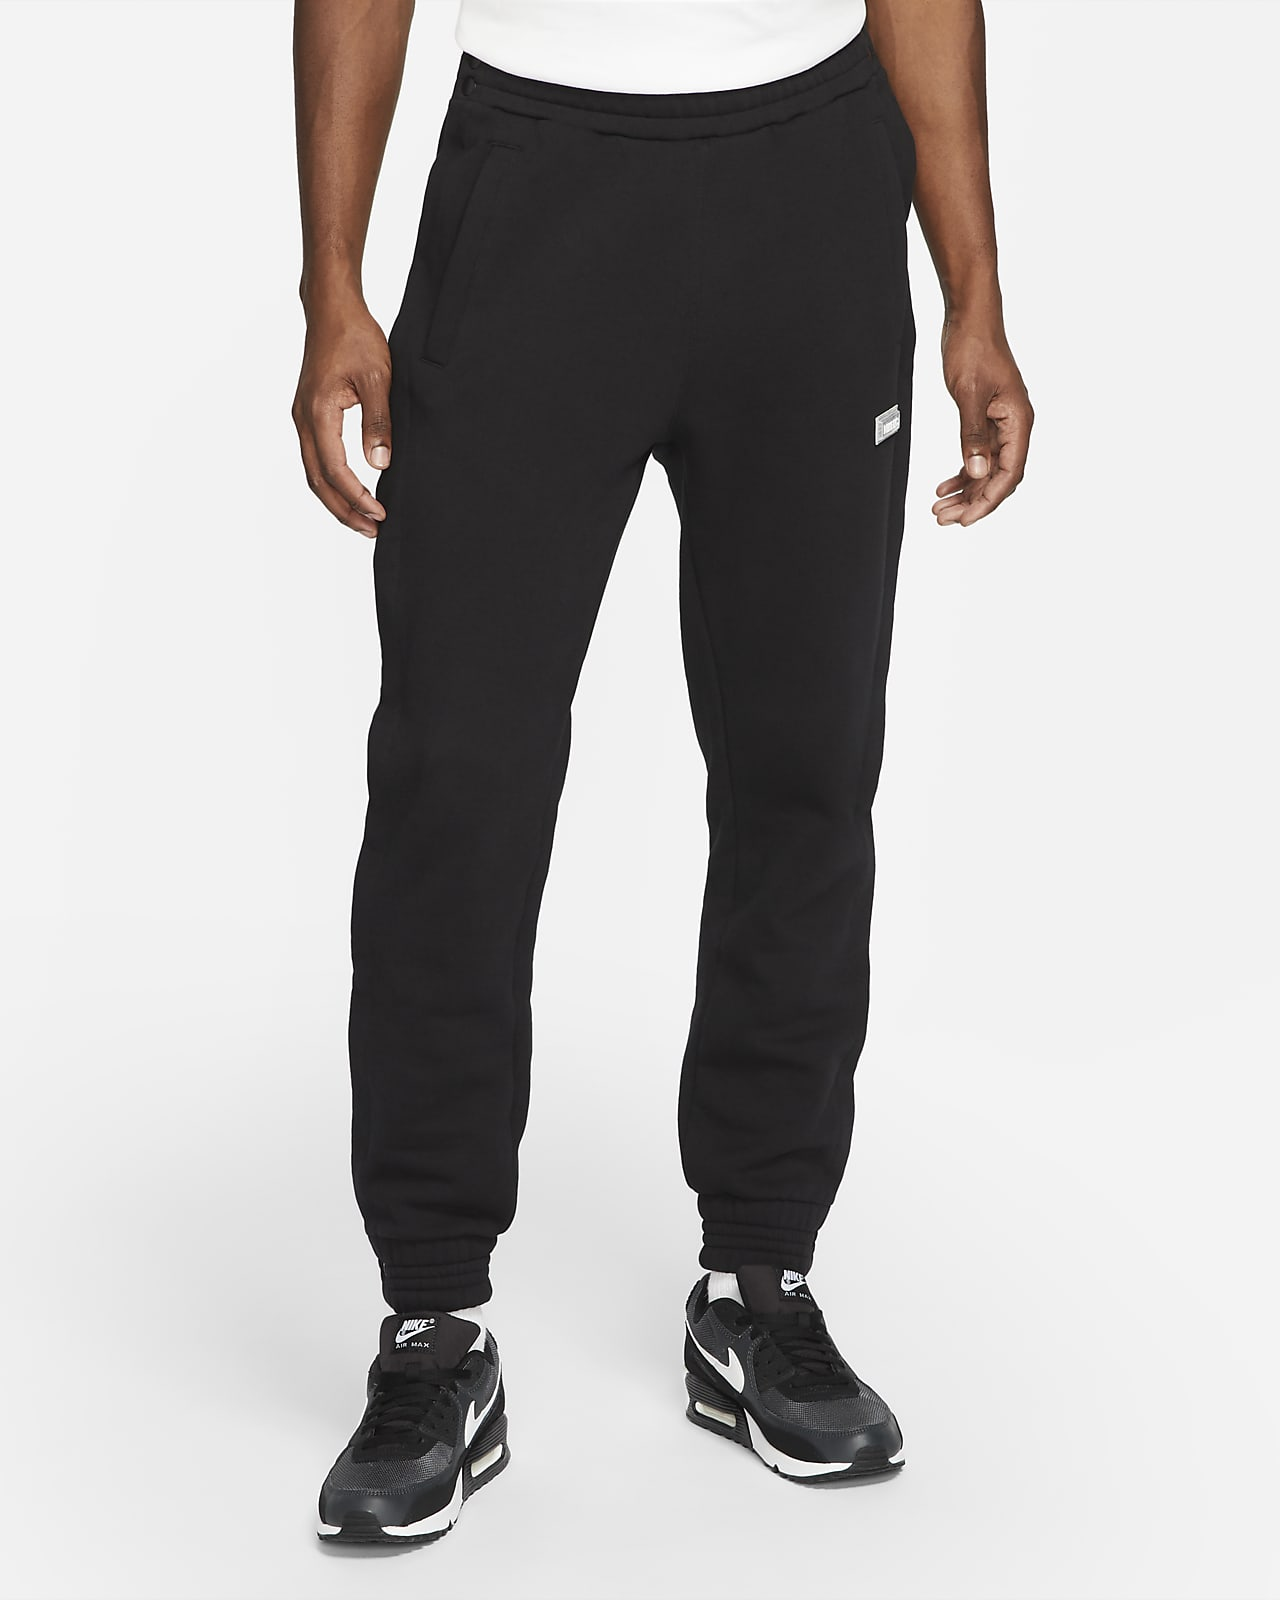 Nike F.C. Men's Fleece Football Pants